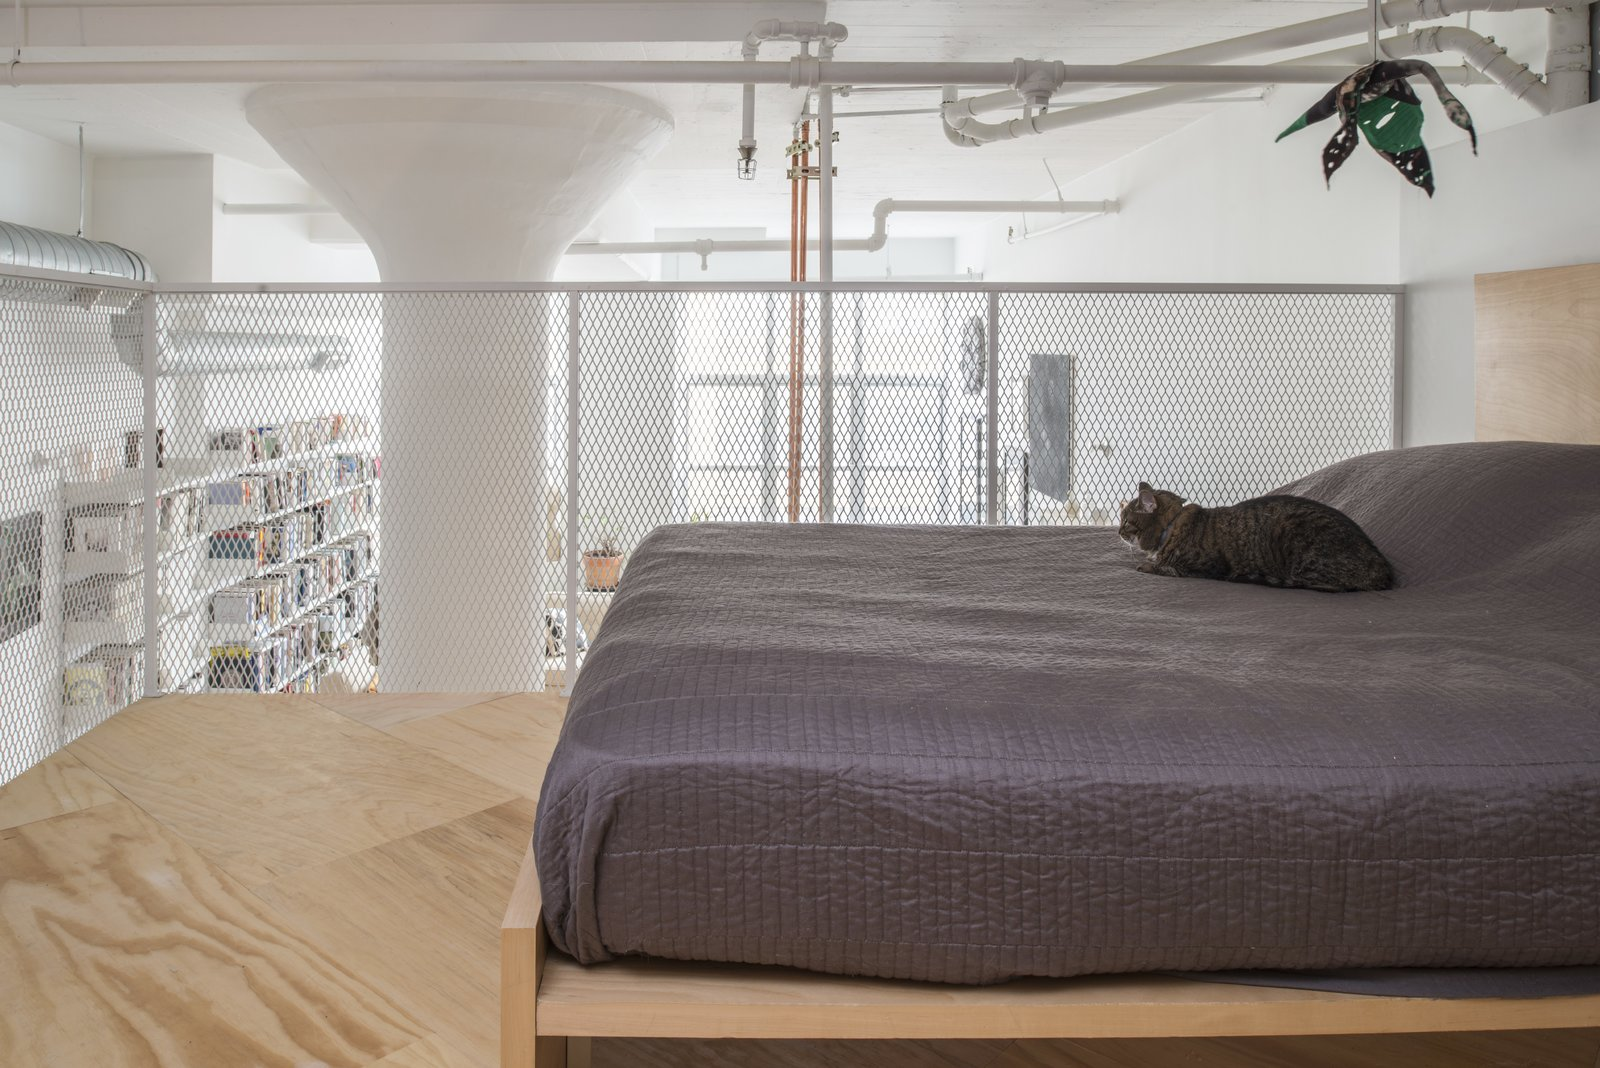 Bedroom, Light Hardwood Floor, and Bed The loft's four-foot-high rail was fabricated by general contractor Create NYC Contracting, using metal mesh from McNichols. The bed is by Nathaniel Wojtalik.  Photo 6 of 7 in This Brooklyn Fashion Designer's Cozy Loft Was Renovated on a Budget